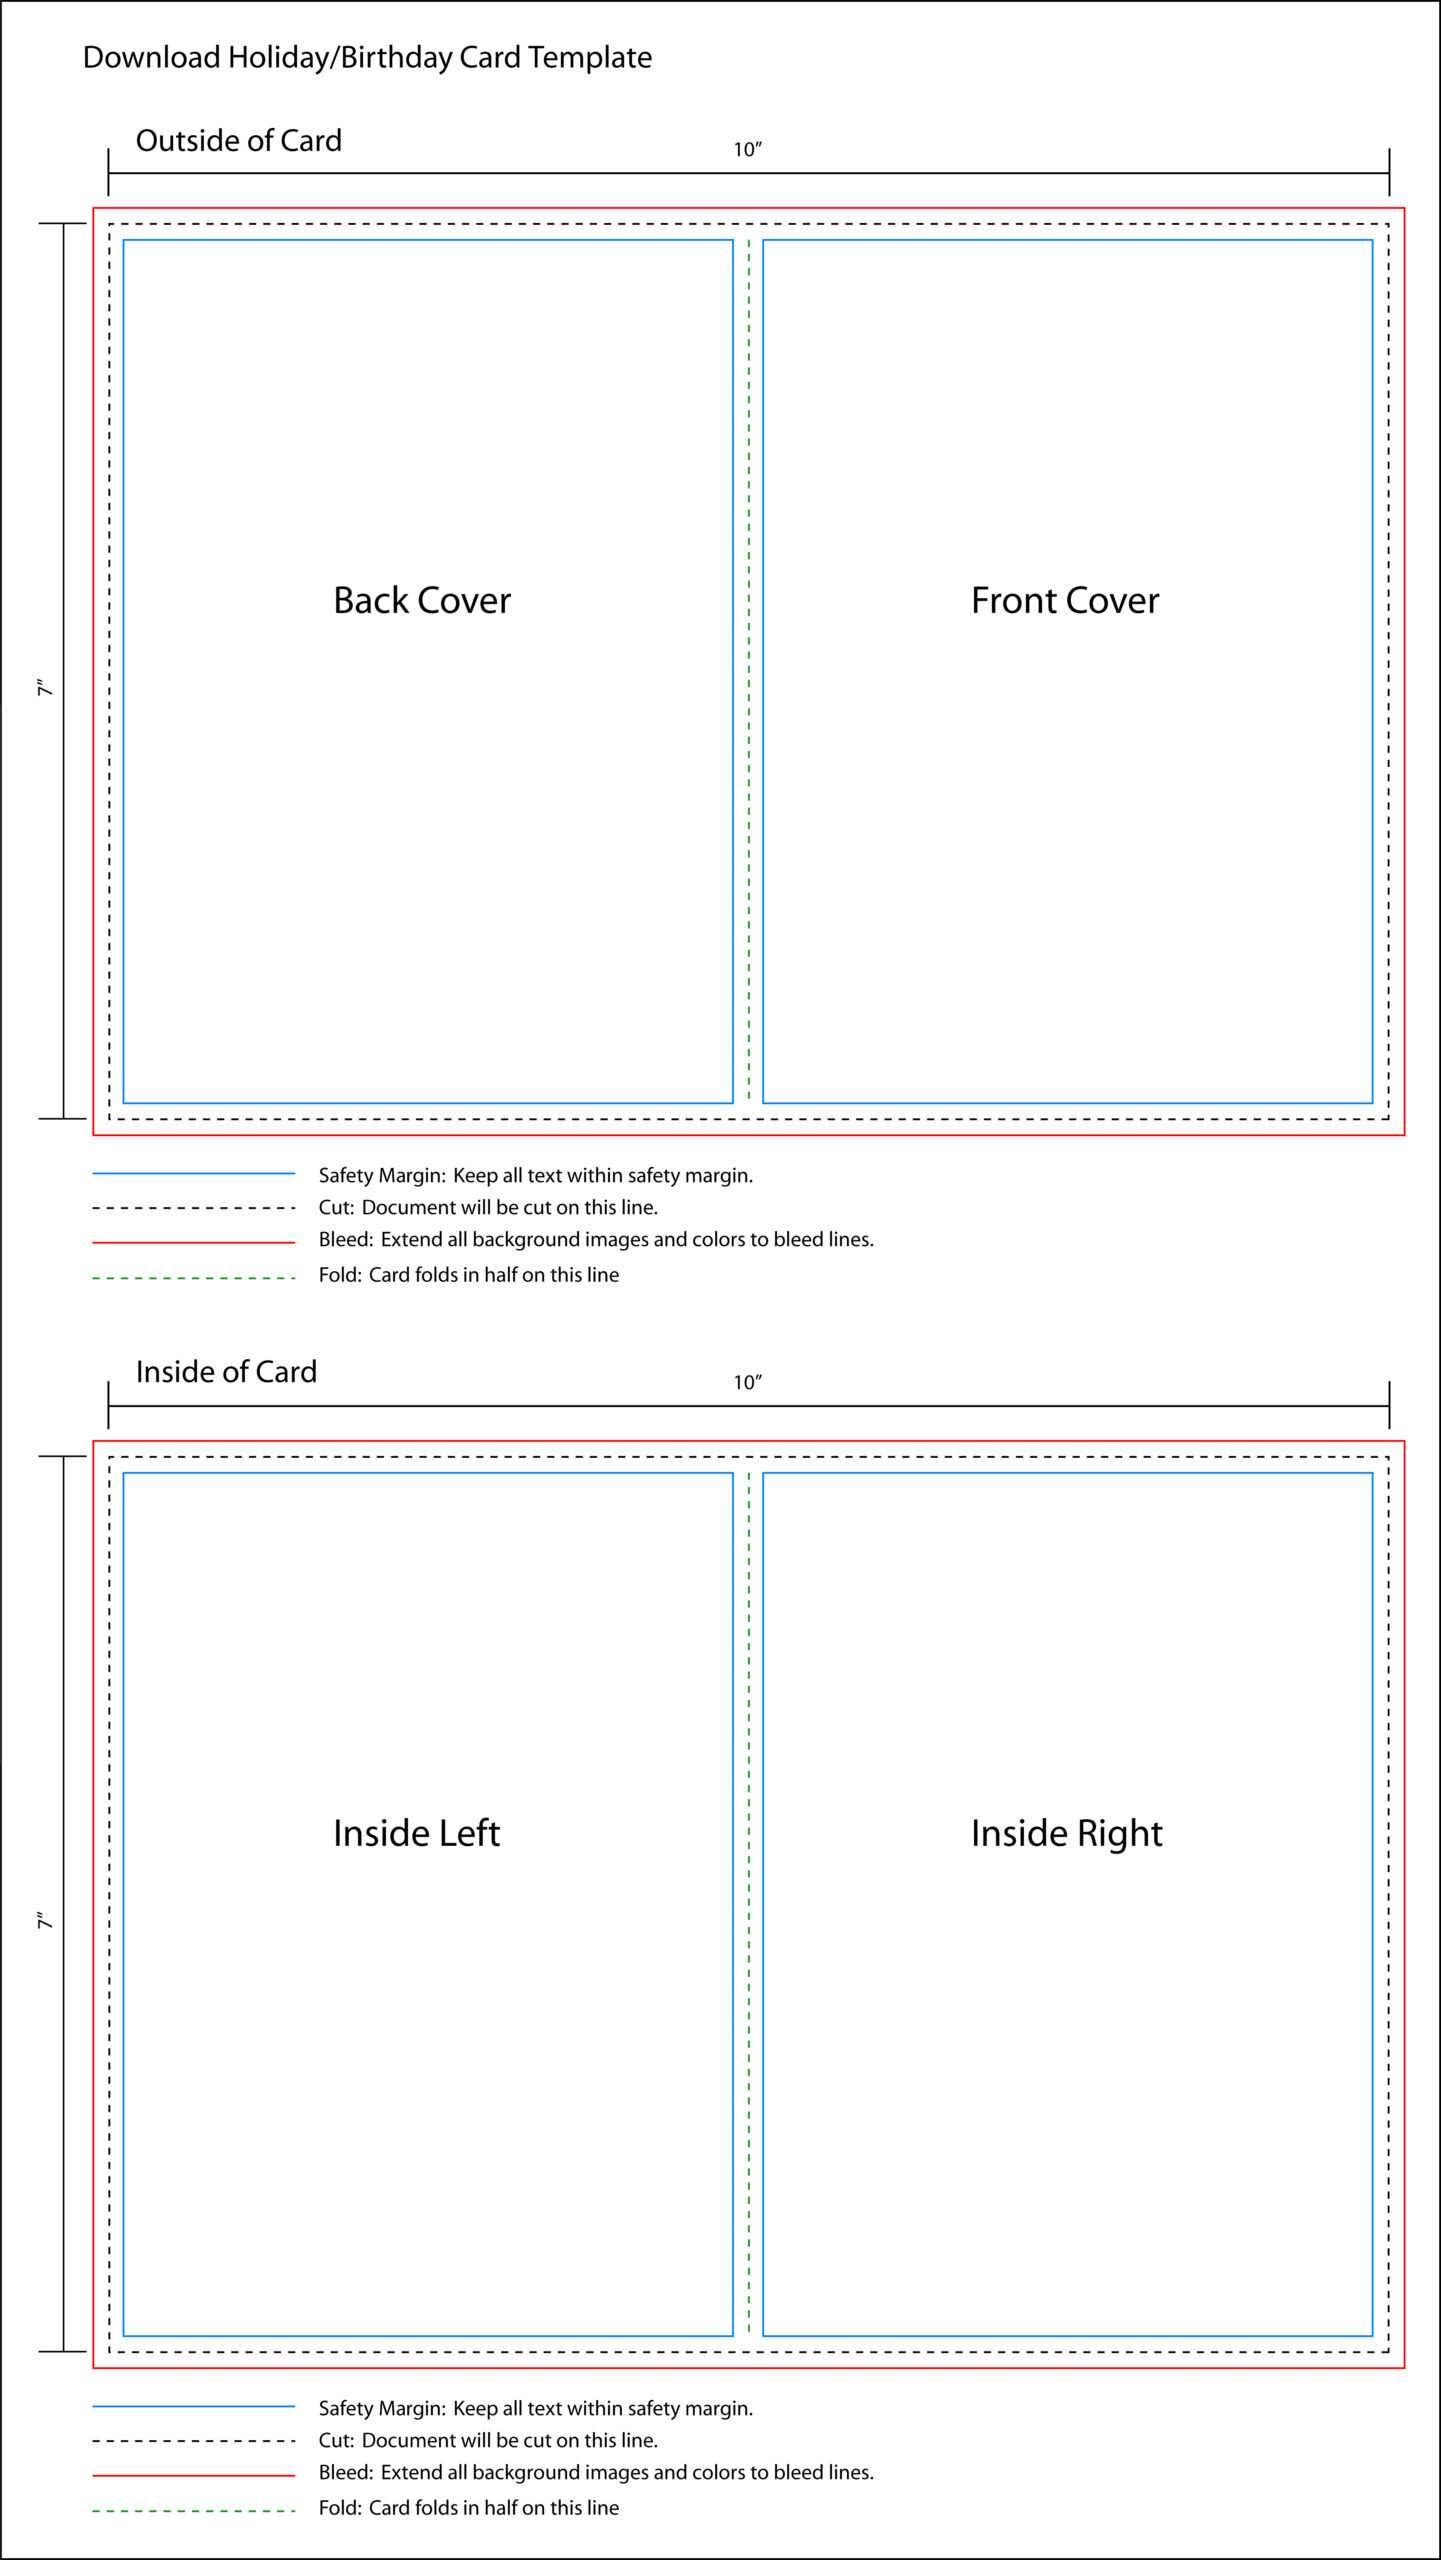 Birthday Card Template Indesign Throughout Birthday Card Template Indesign